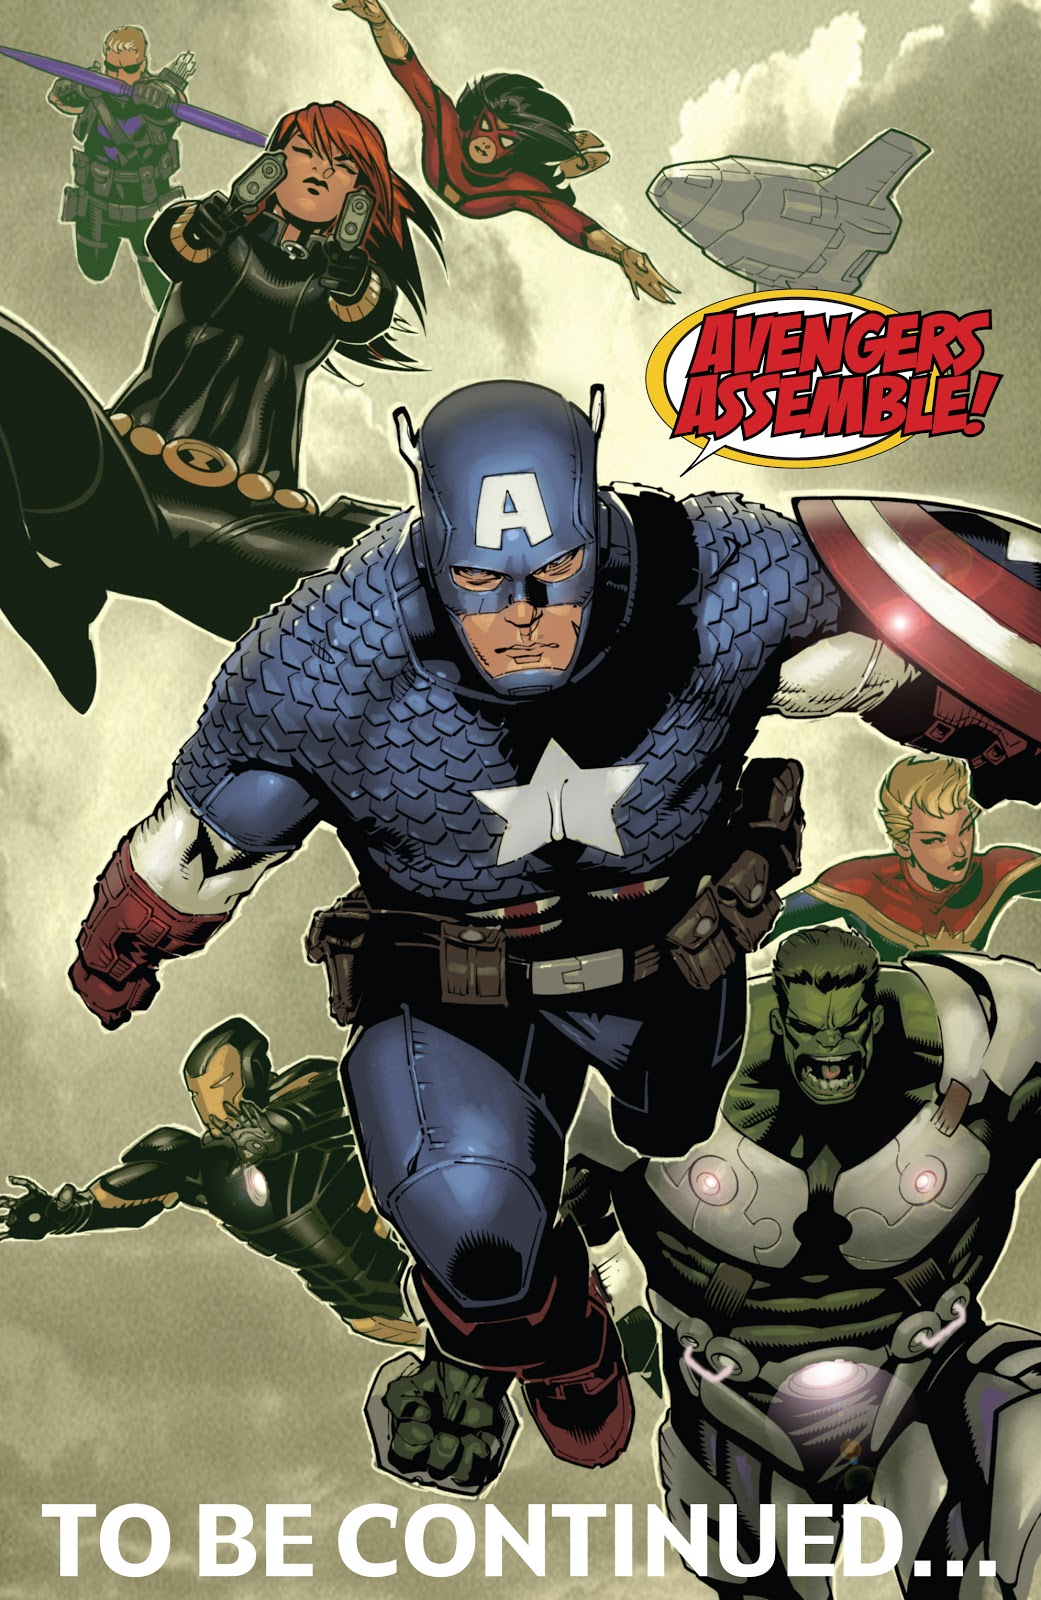 The Avengers (Uncanny X-Men Vol. 3 #2)